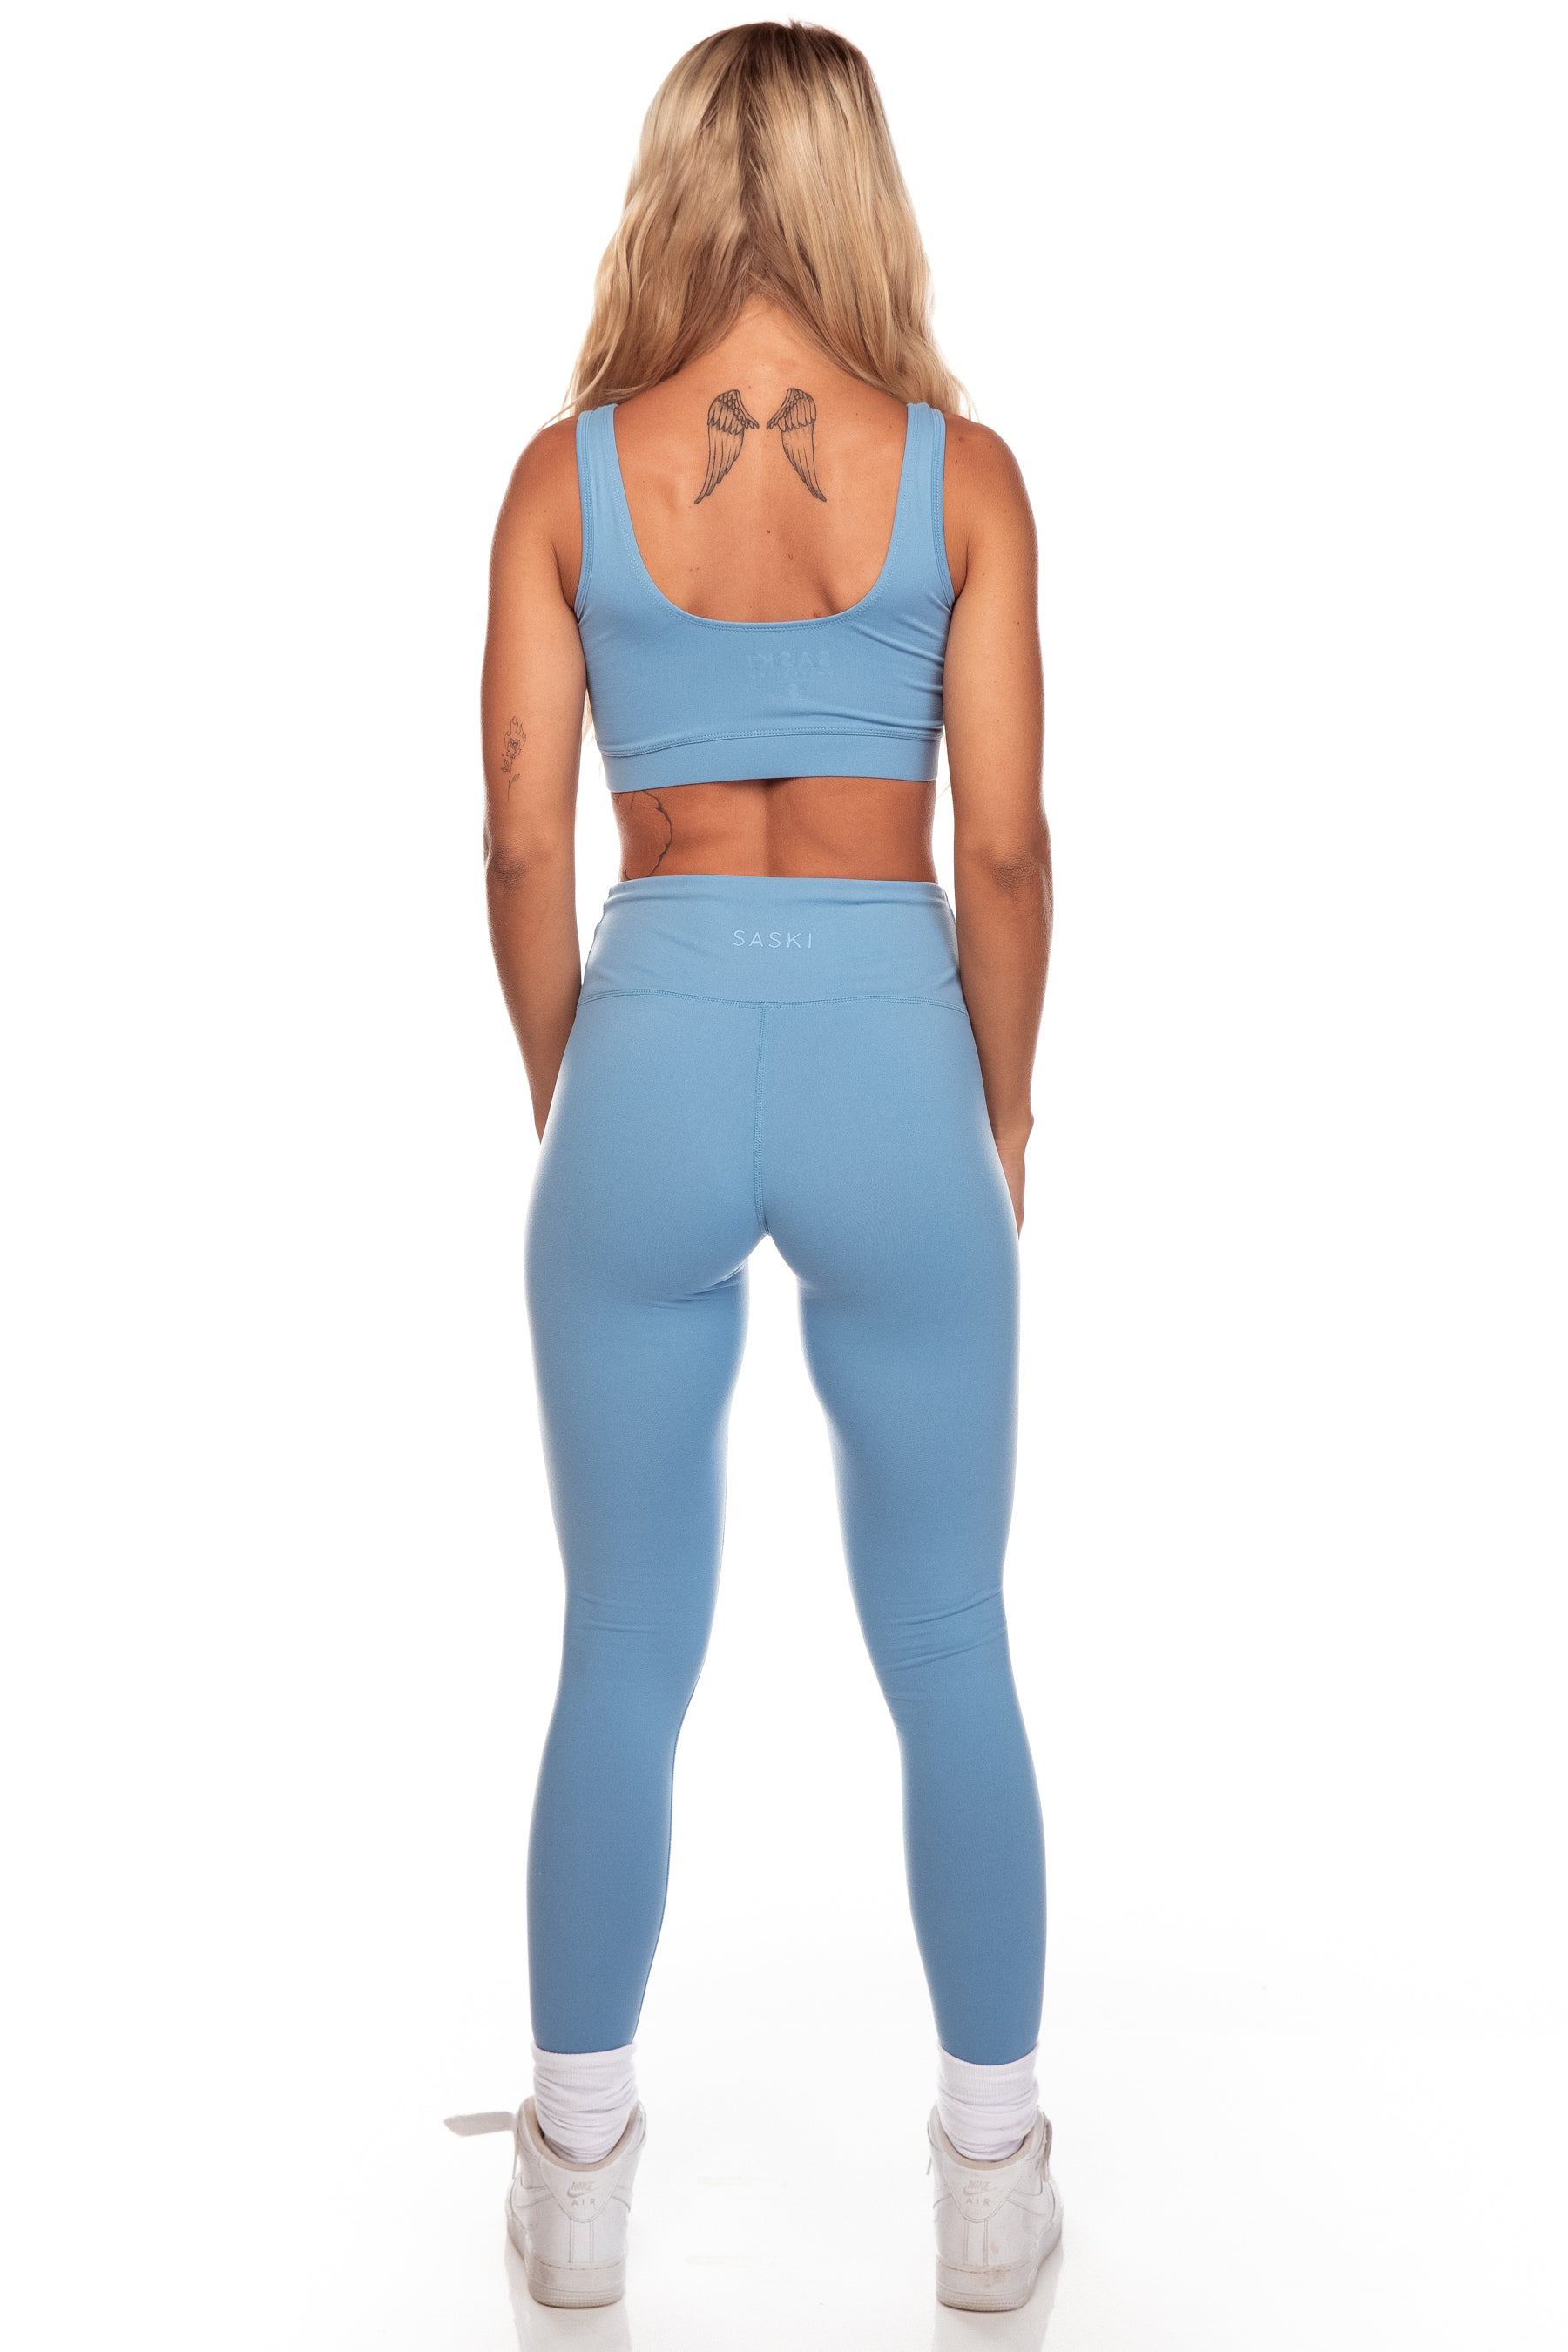 Steel Blue Square Neck Sports Bra